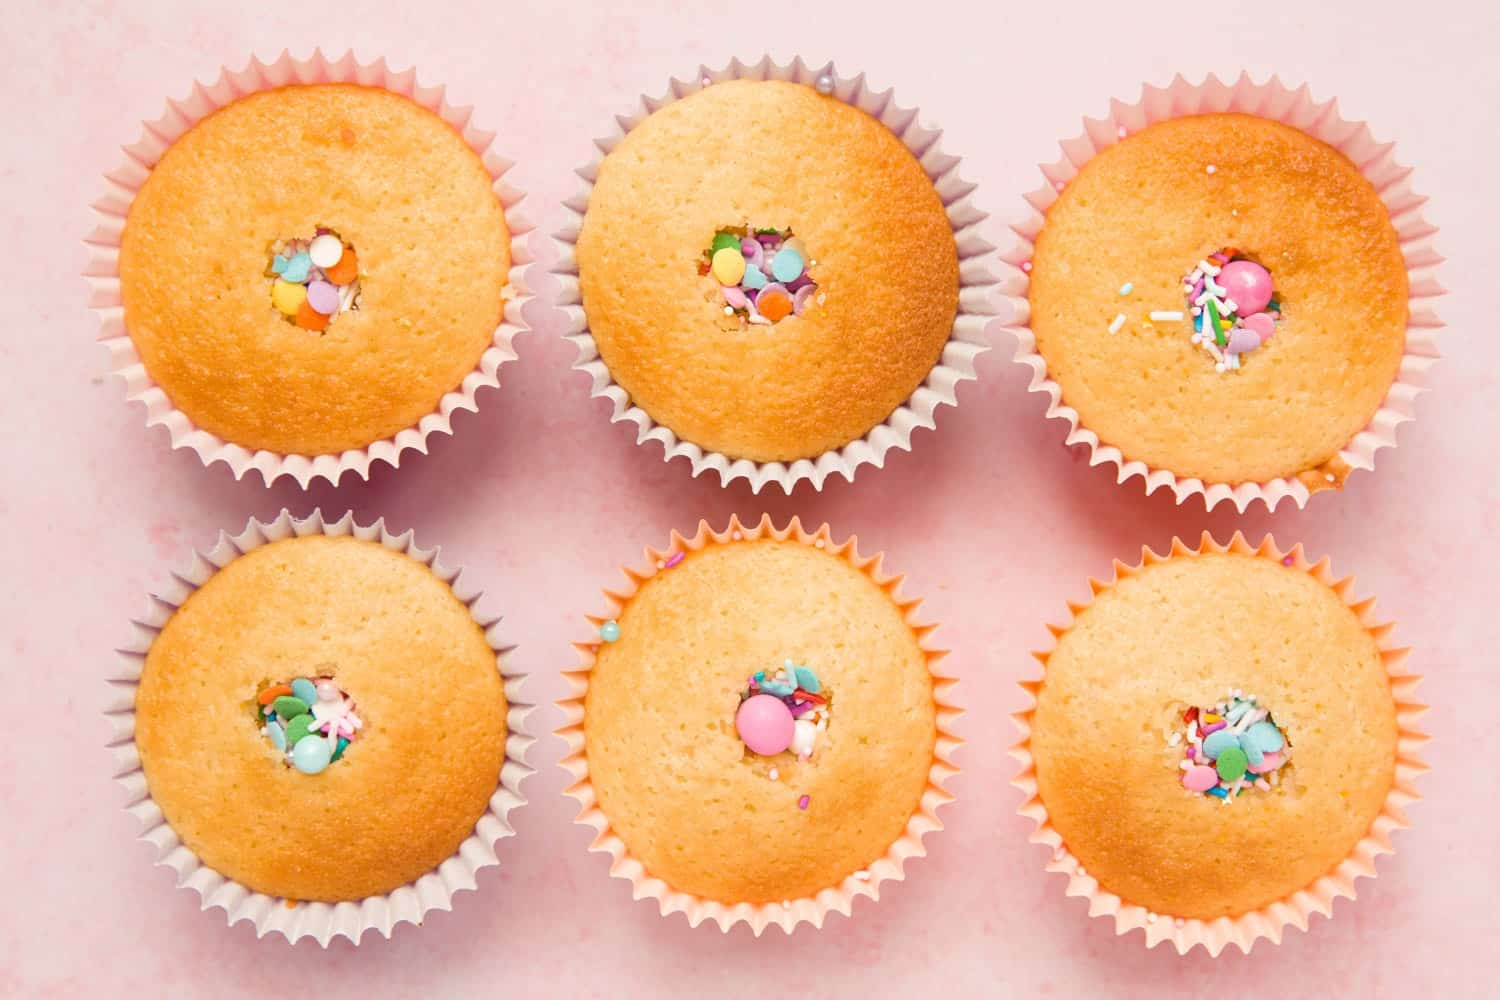 Overhead shot of six cupcakes with the centres carved out and filled with sprinkles